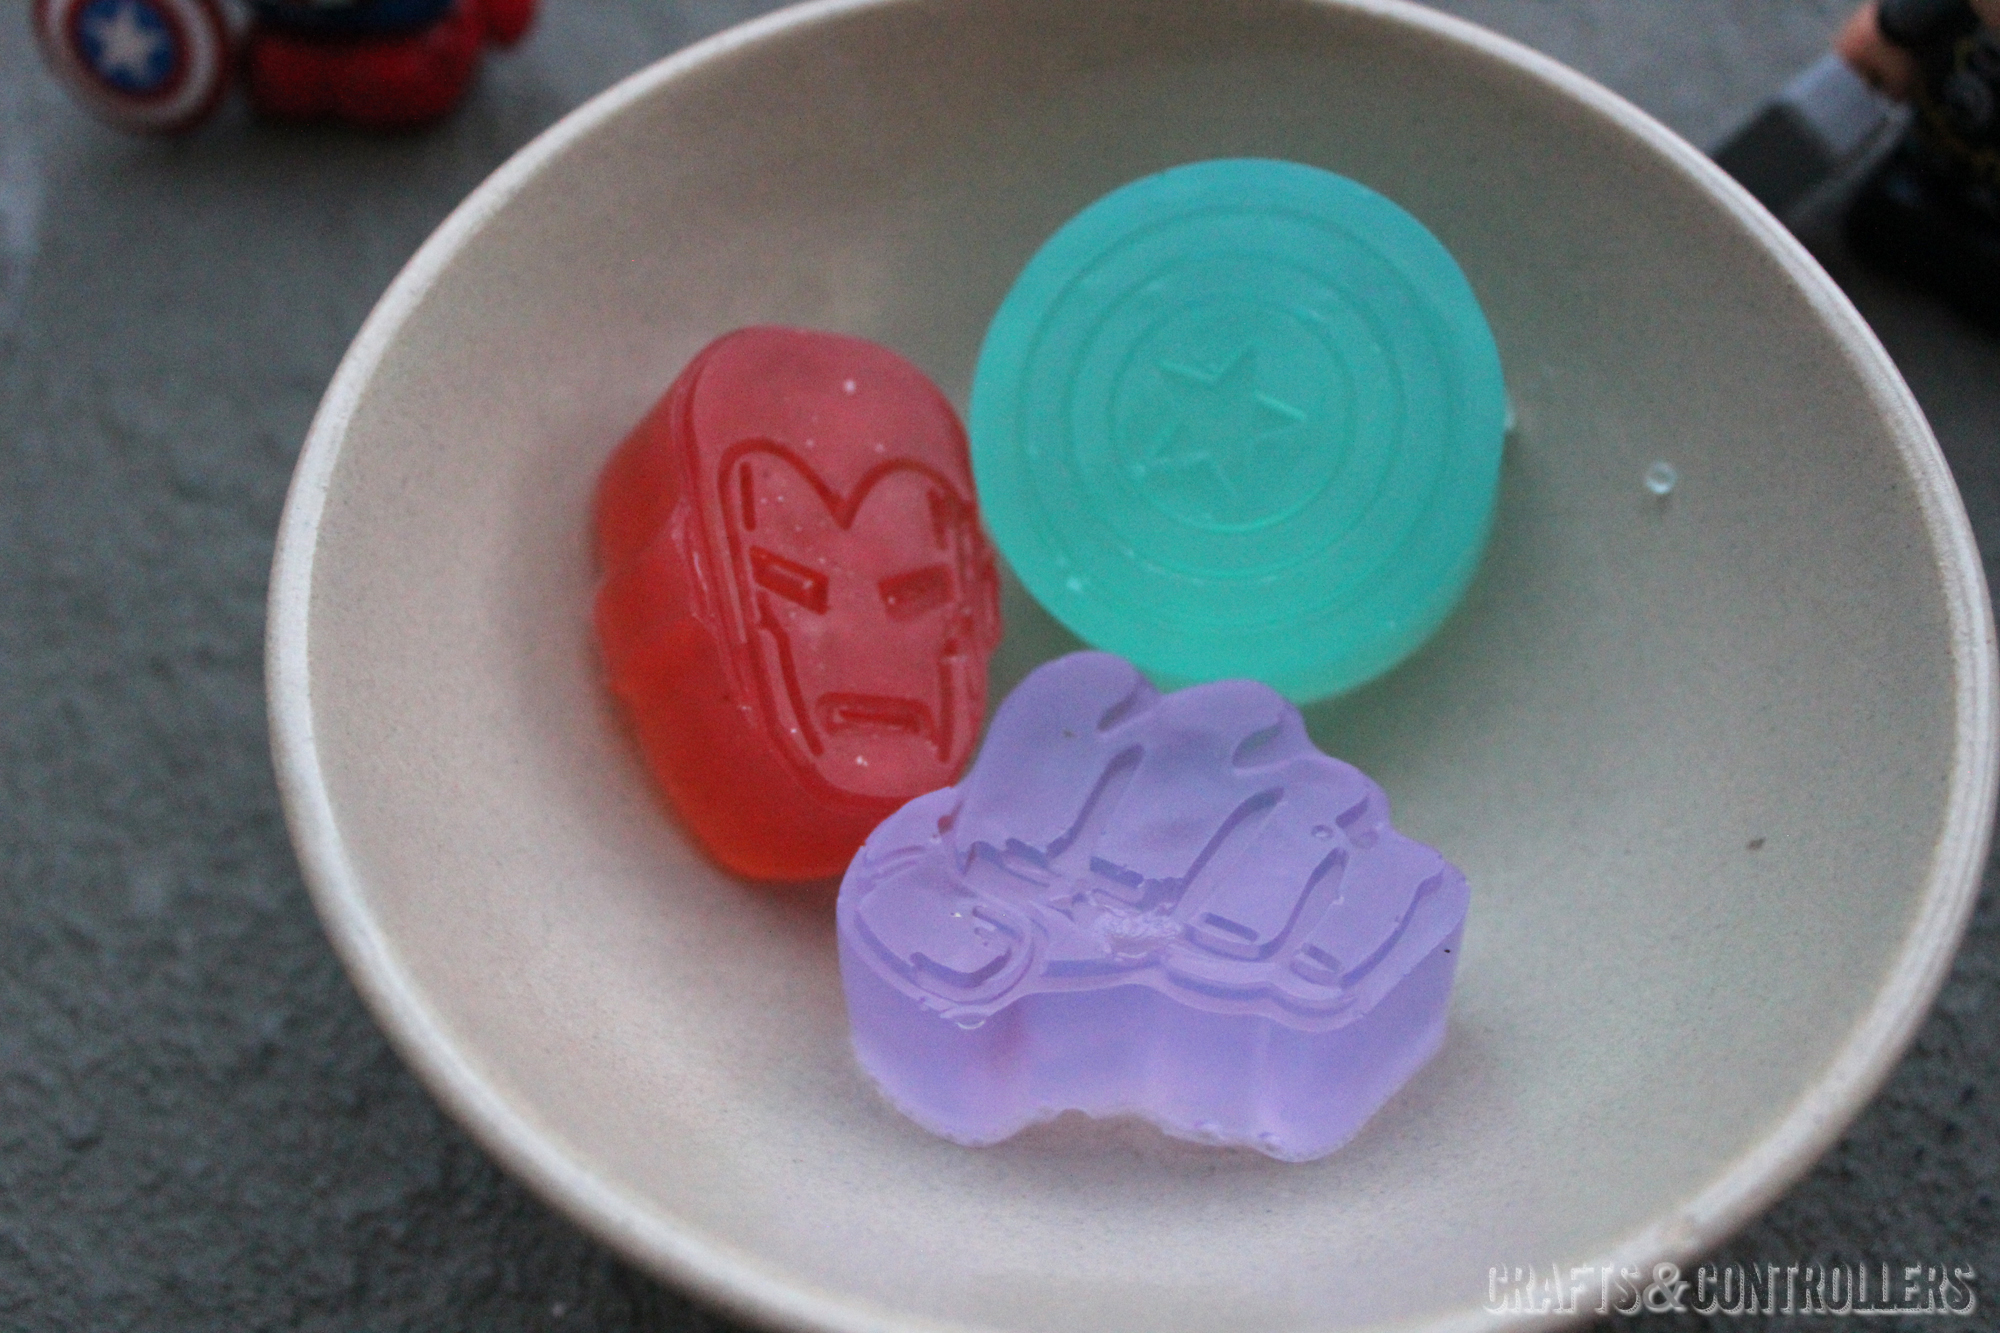 Avengers Assemble! How to Make Marvel-ous Fourth of July Soap